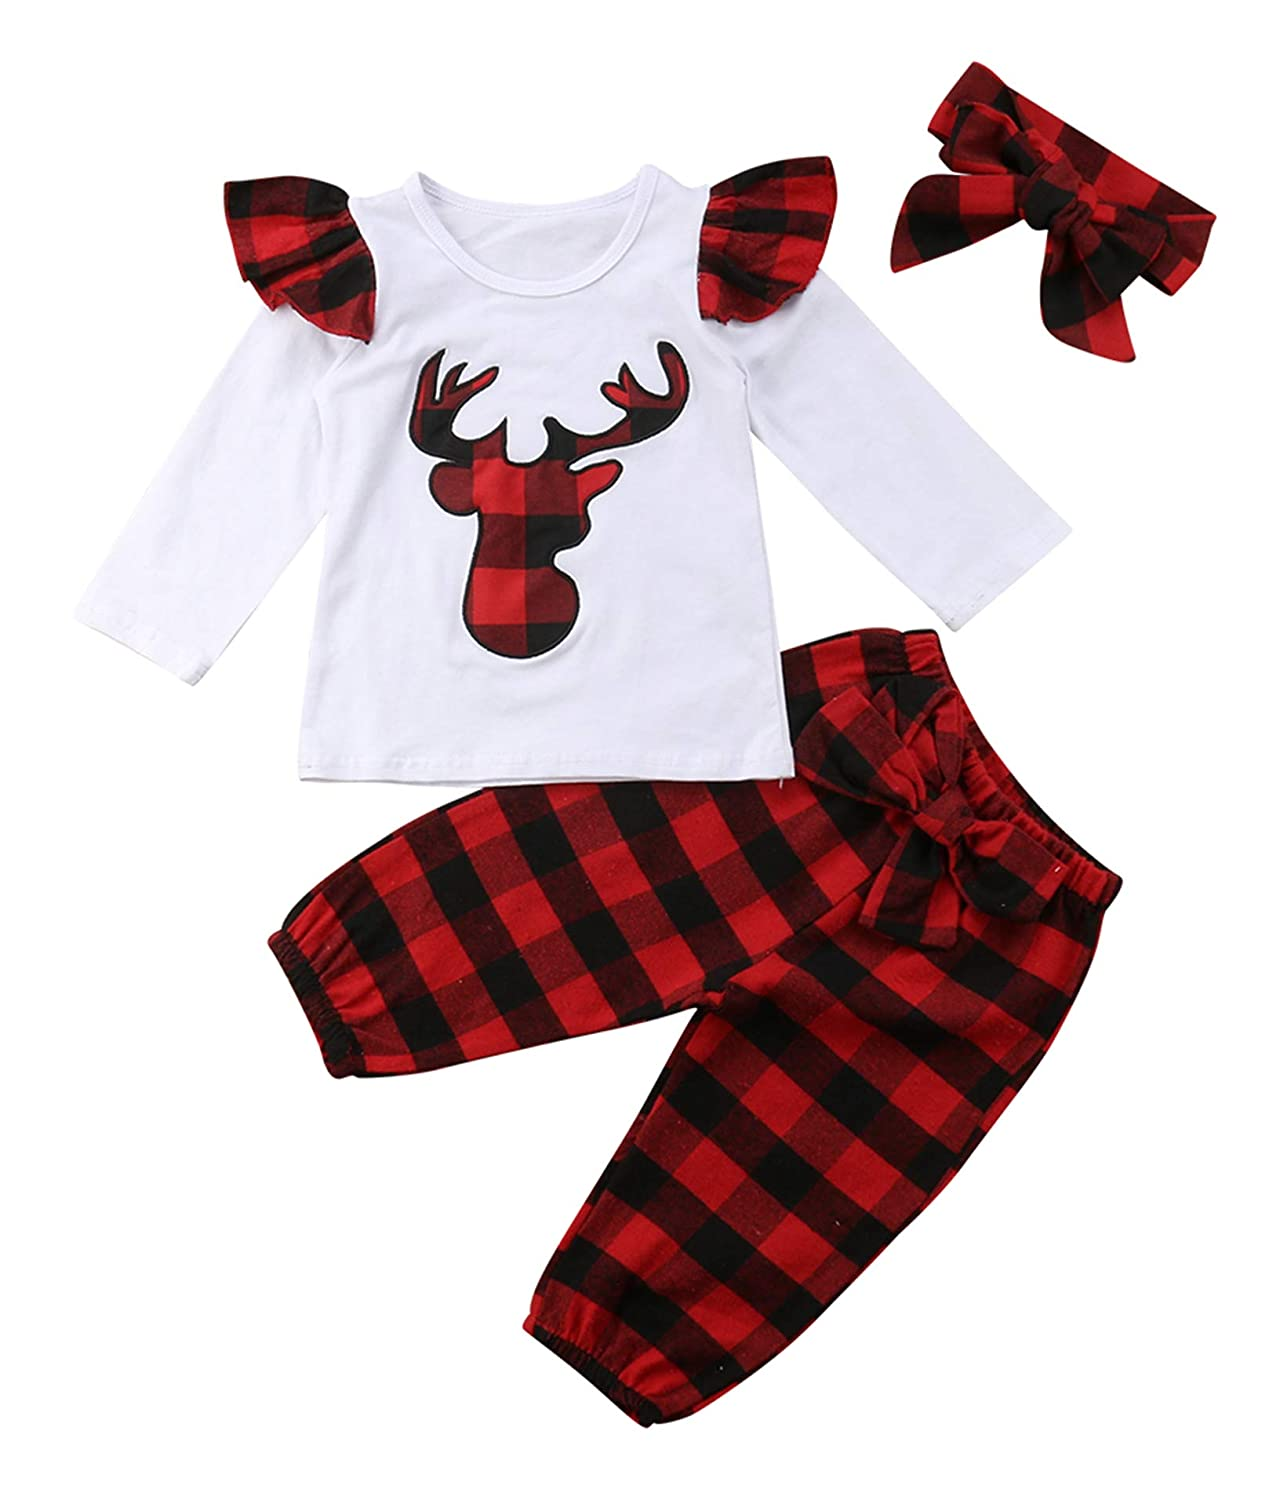 108170eed Babys Christmas T-shirt Outfits Long Sleeve Santa\'s Elk Tops+Red and Black Buffalo  Plaid Pants Hat 3PCS Clothing Color:White T-shirt with Red Black plaid ...